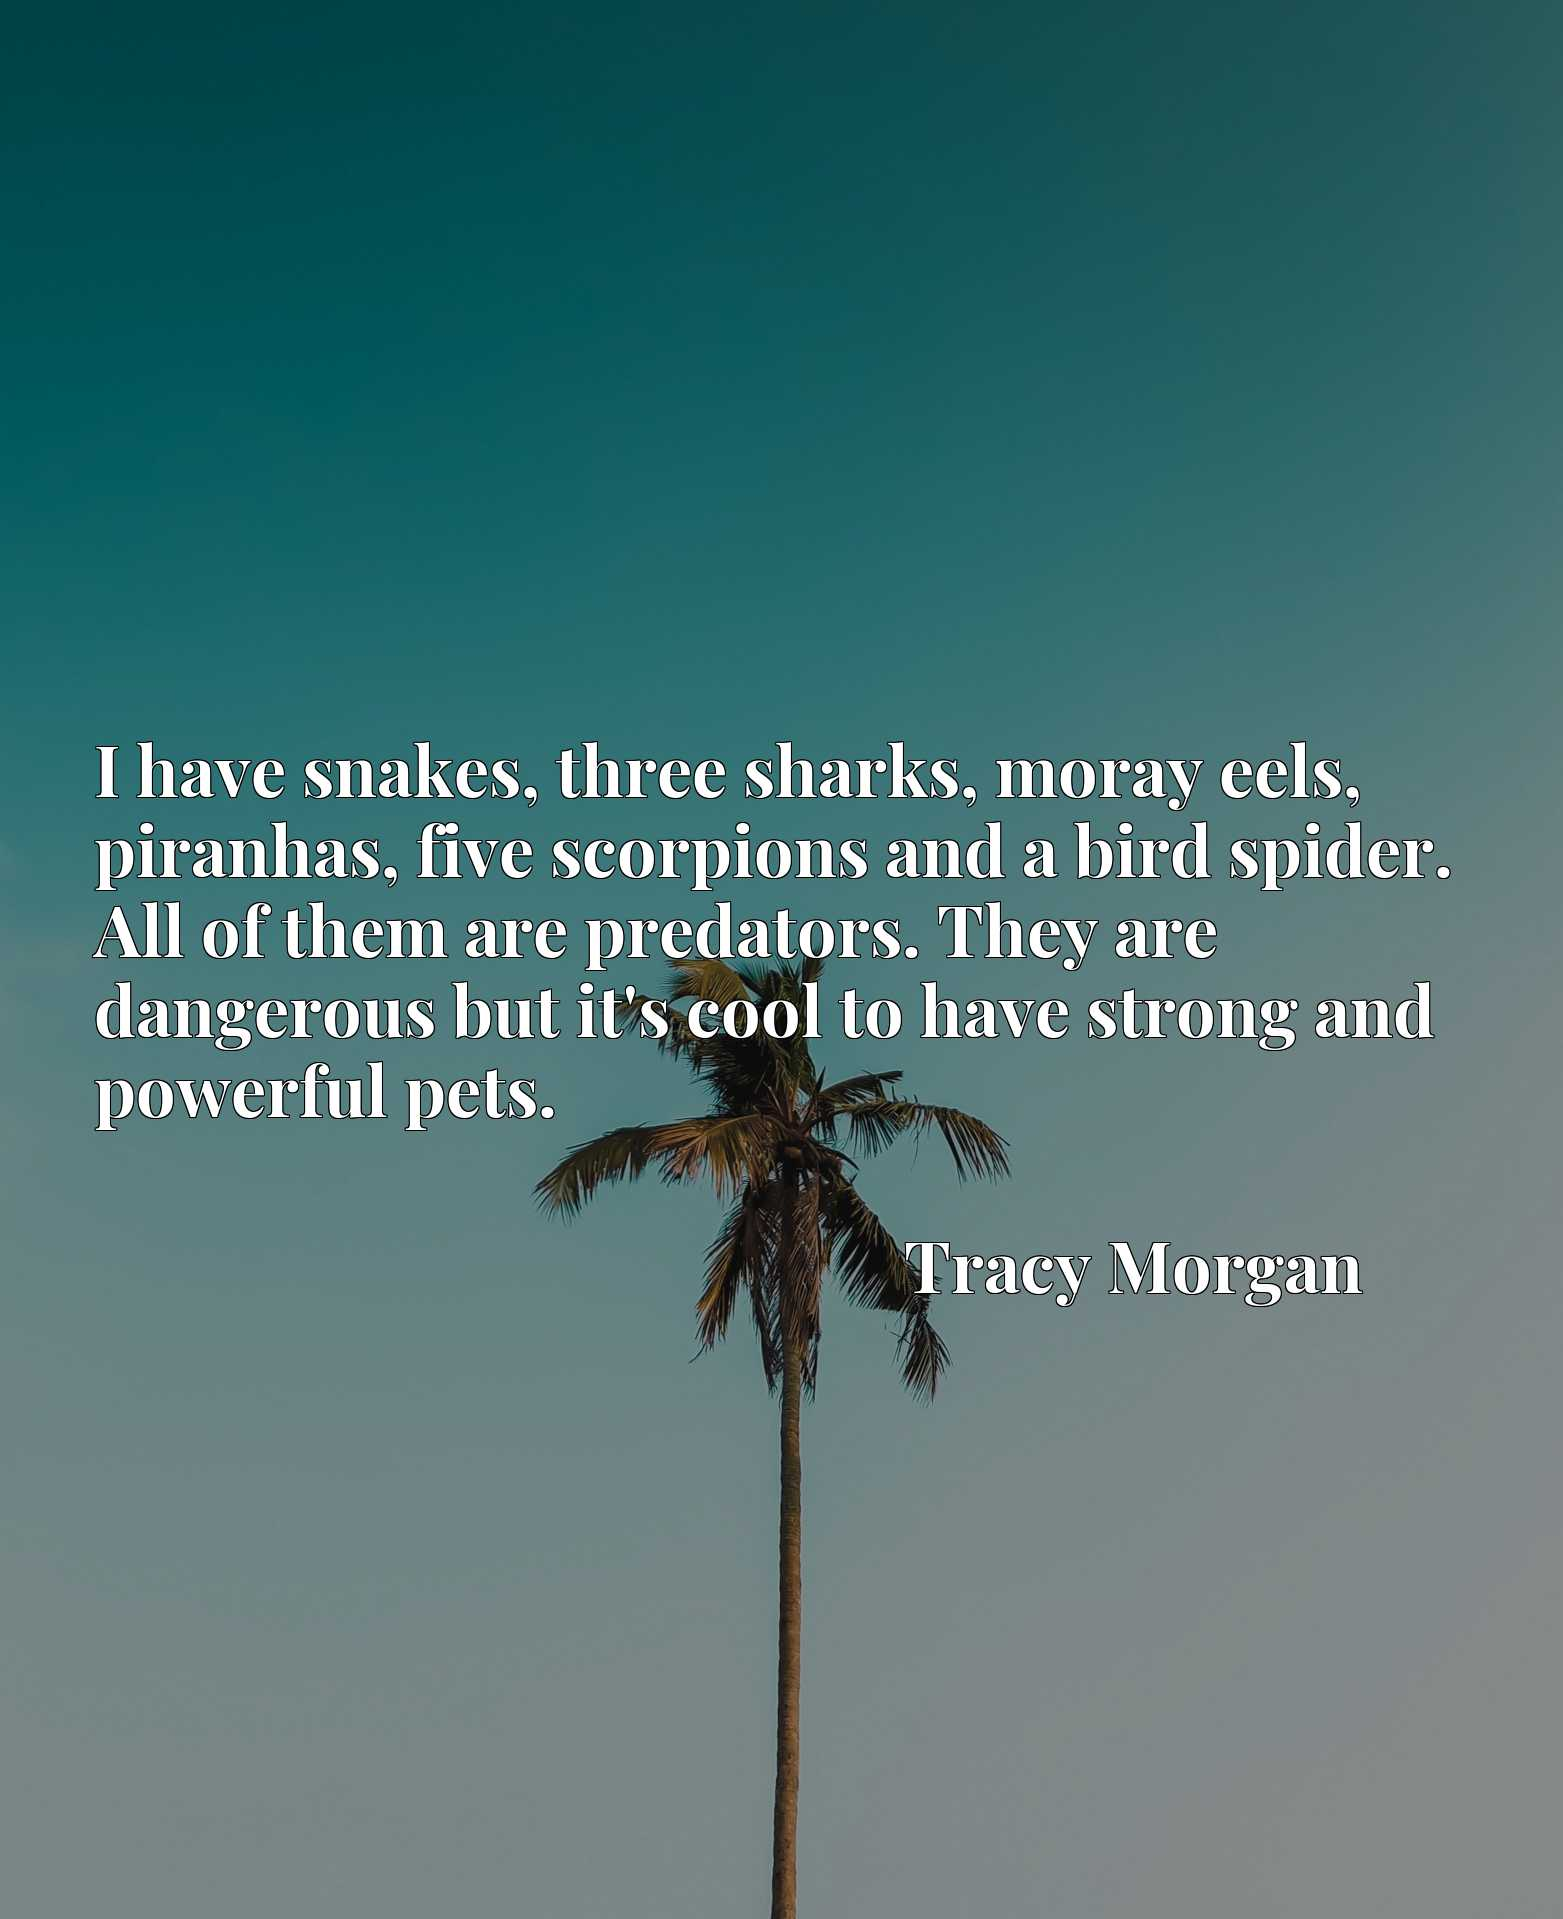 I have snakes, three sharks, moray eels, piranhas, five scorpions and a bird spider. All of them are predators. They are dangerous but it's cool to have strong and powerful pets.